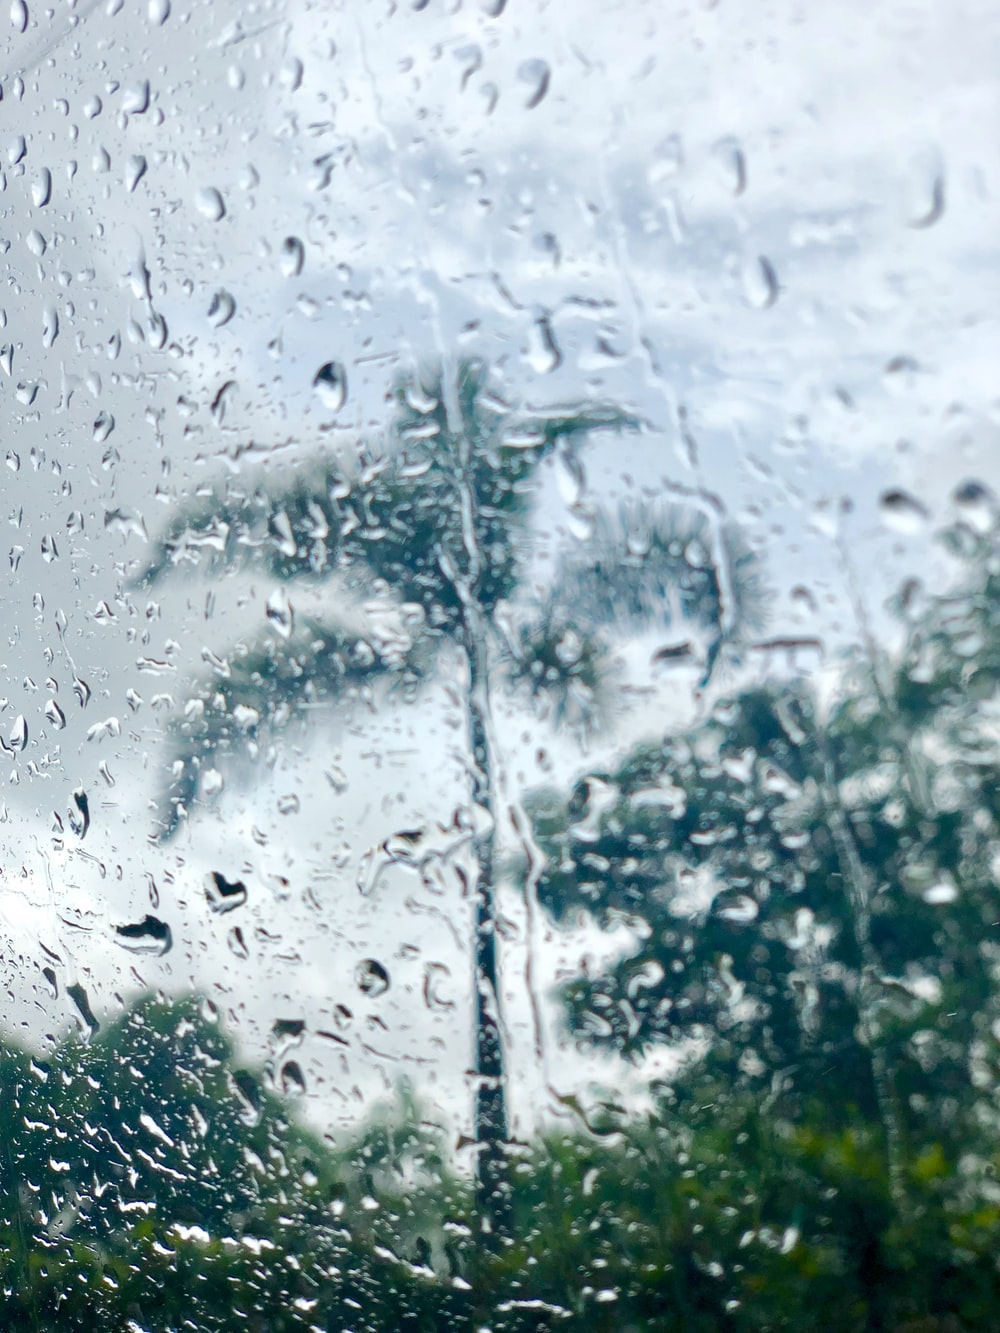 water droplets in glass panel